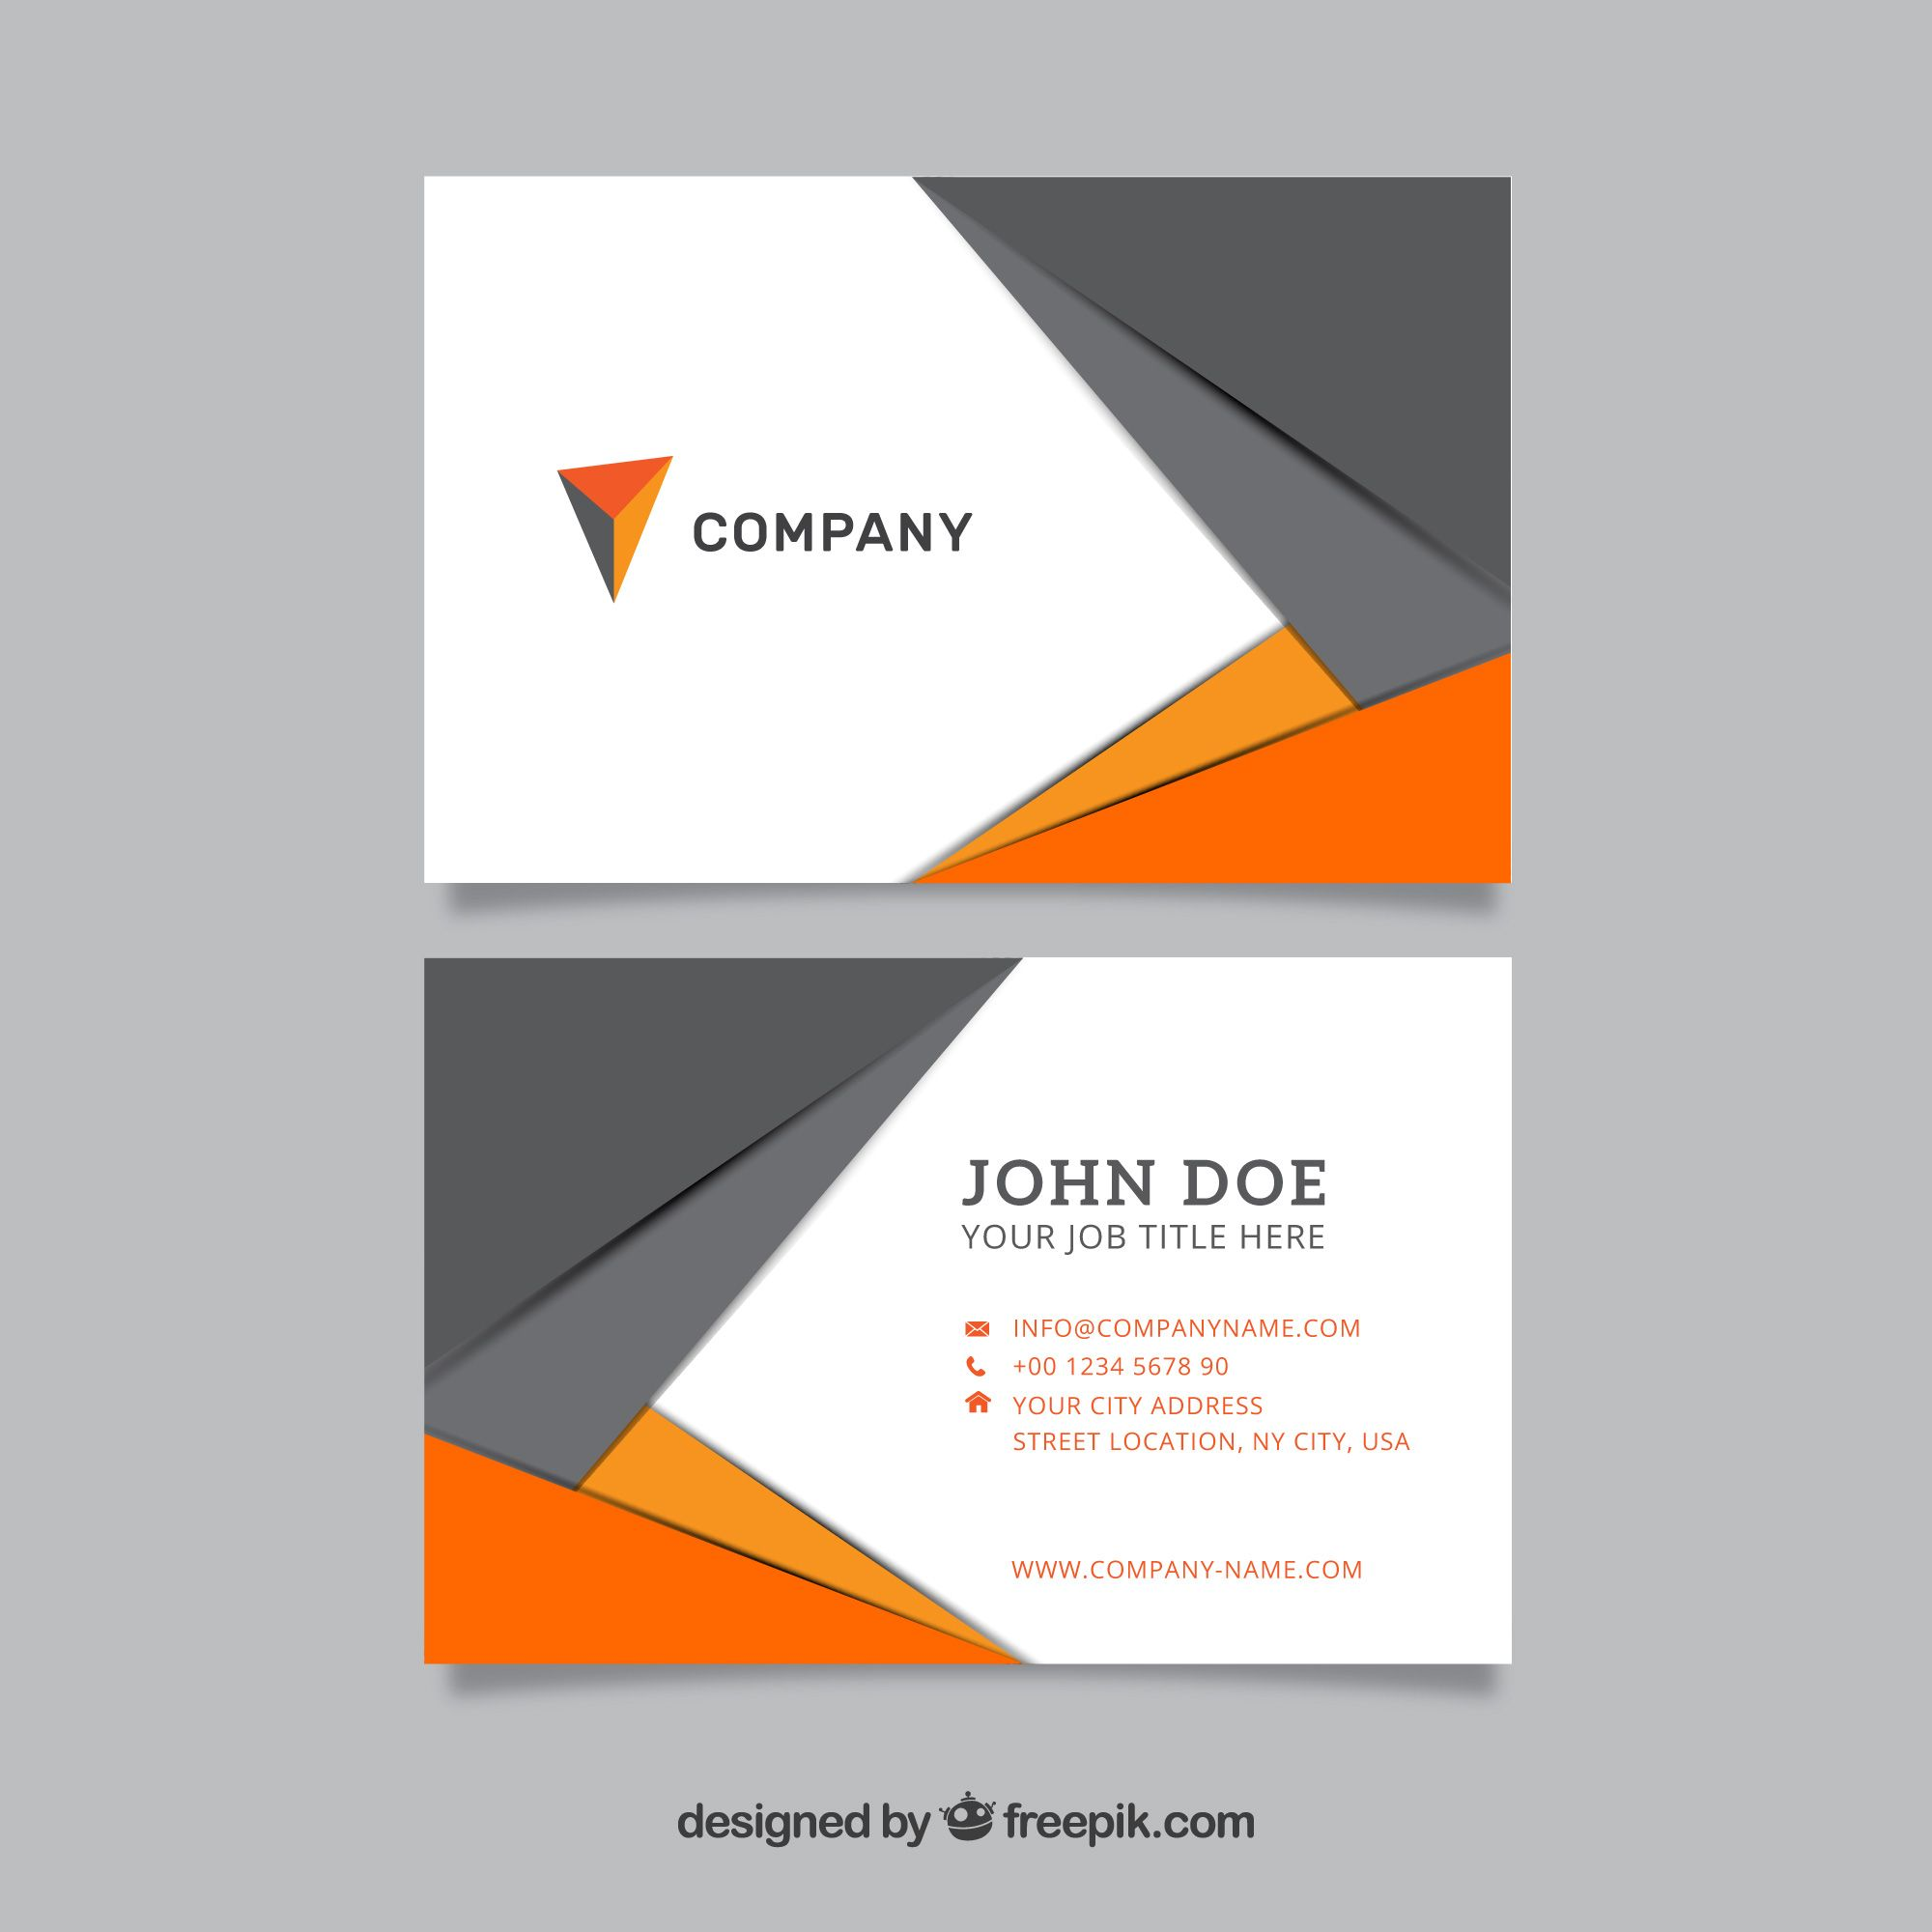 Pin by budi bubee on templet | Pinterest | Business cards and Logos